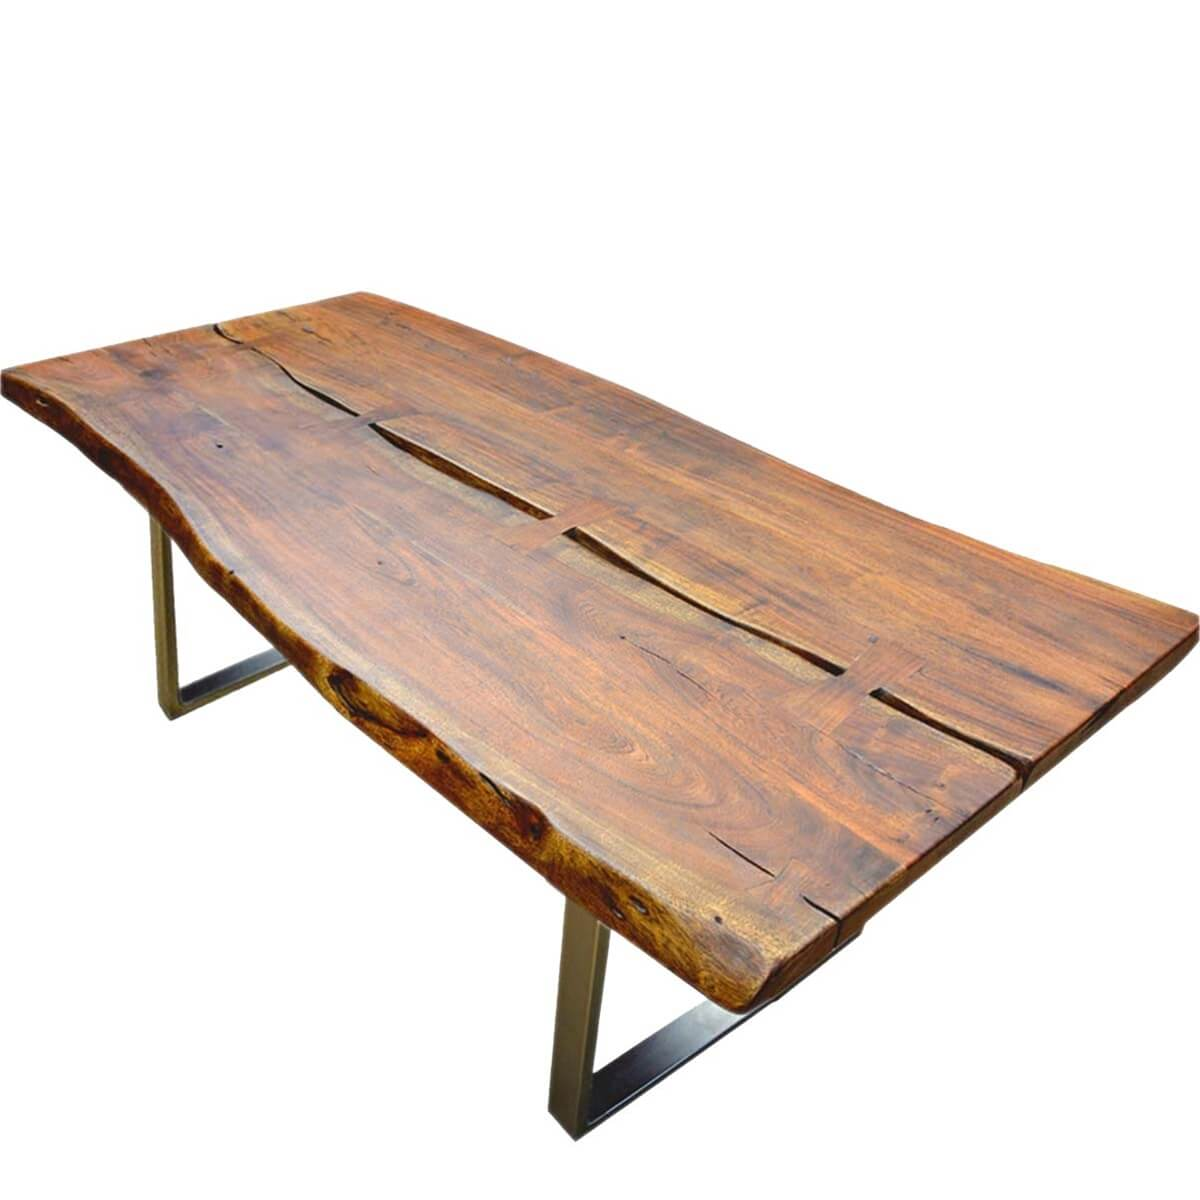 Rustic industrial large solid wood live edge dining table Rustic wood dining table